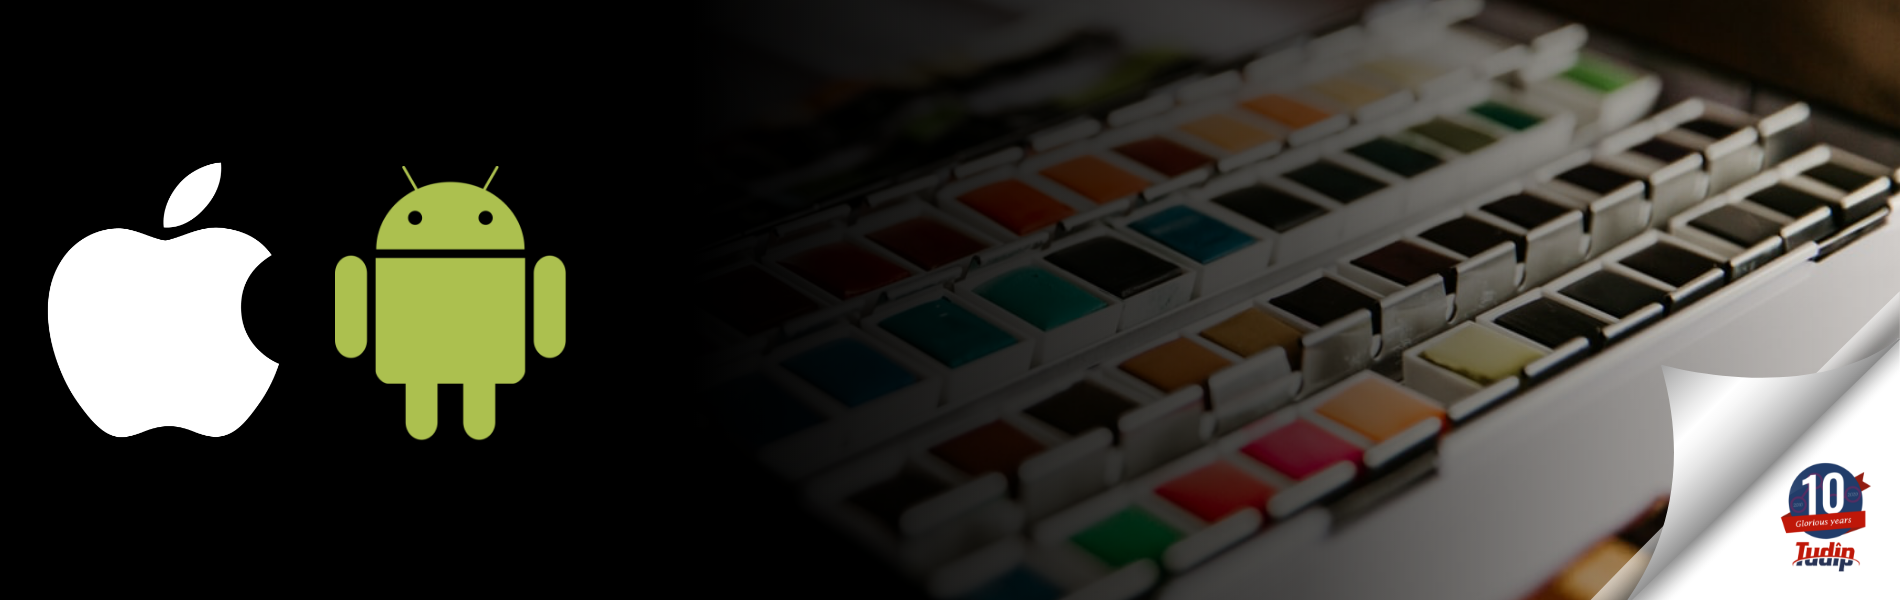 Select_Different_Colors_ Android_iOS_Applications_changed_website